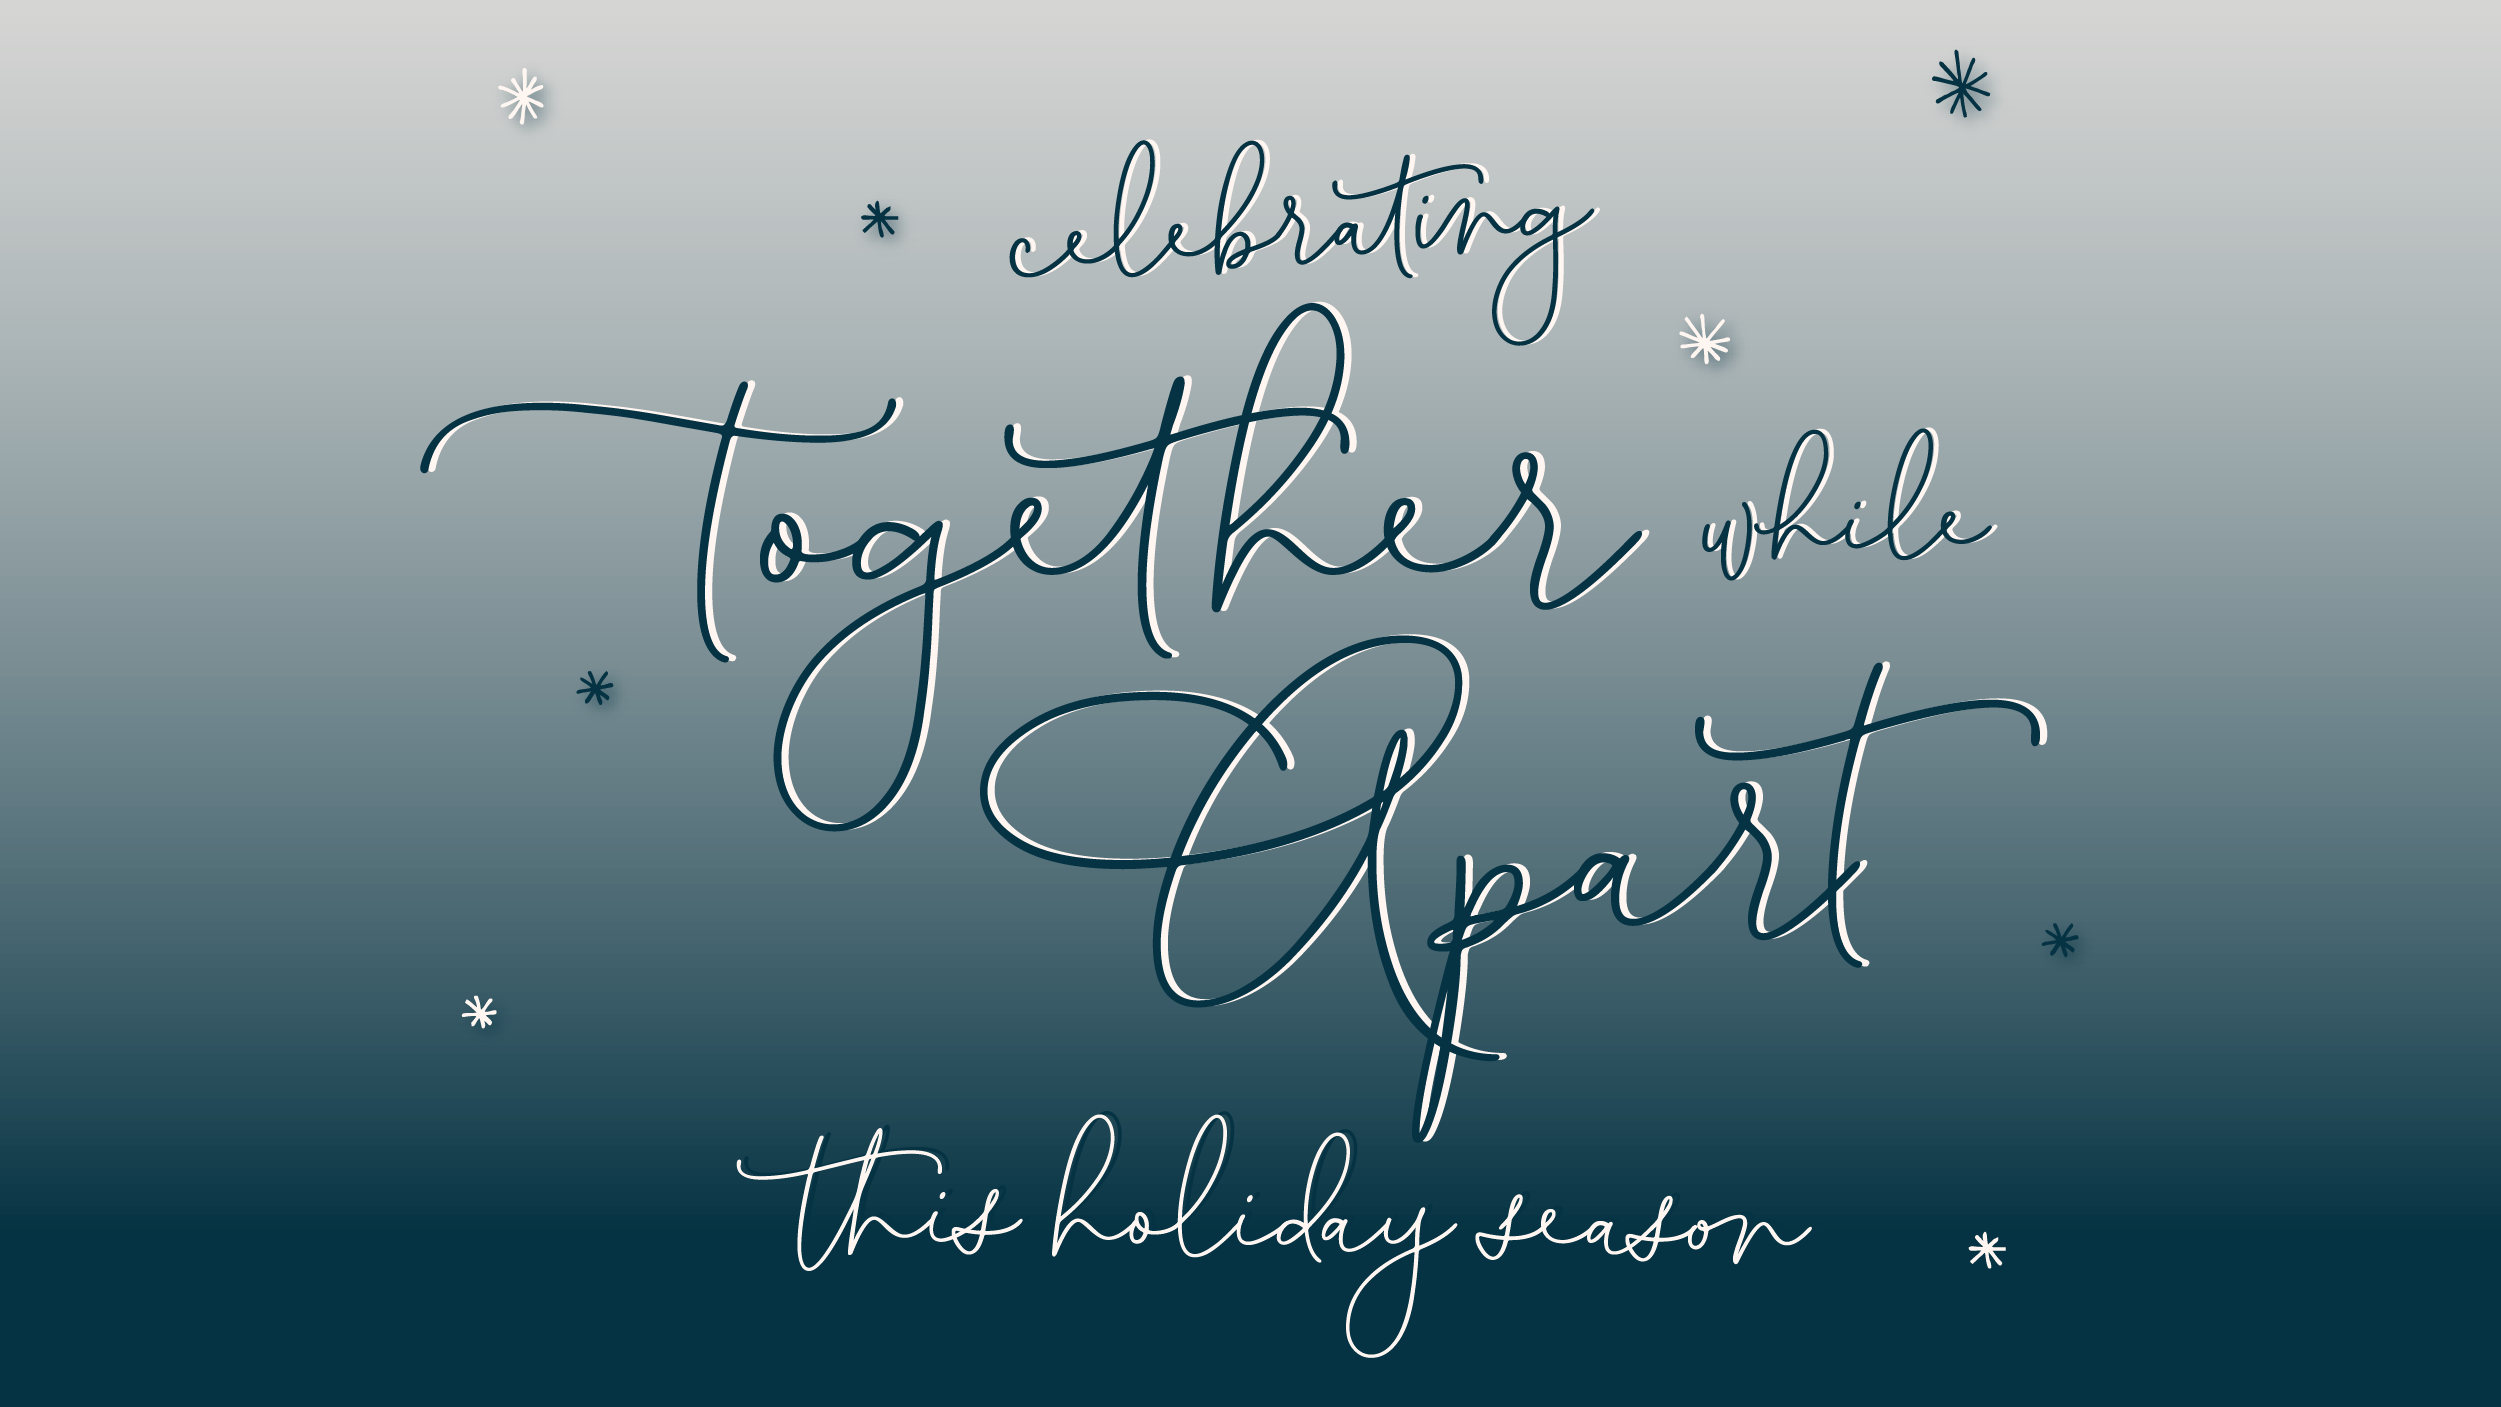 Celebrating together while apart this holiday season